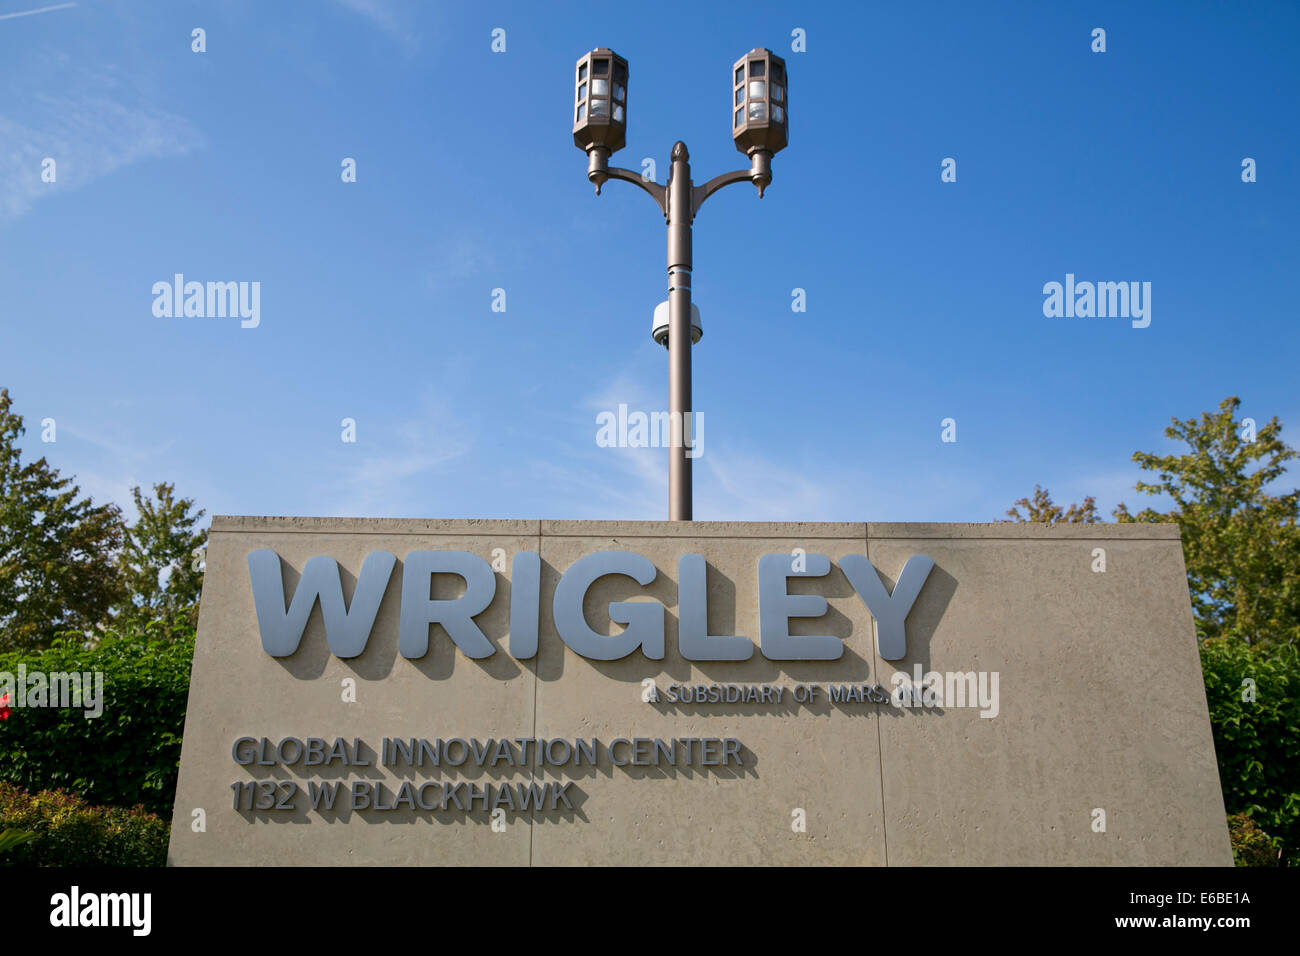 The headquarters of William Wrigley Jr. Company in Chicago, Illinois. - Stock Image